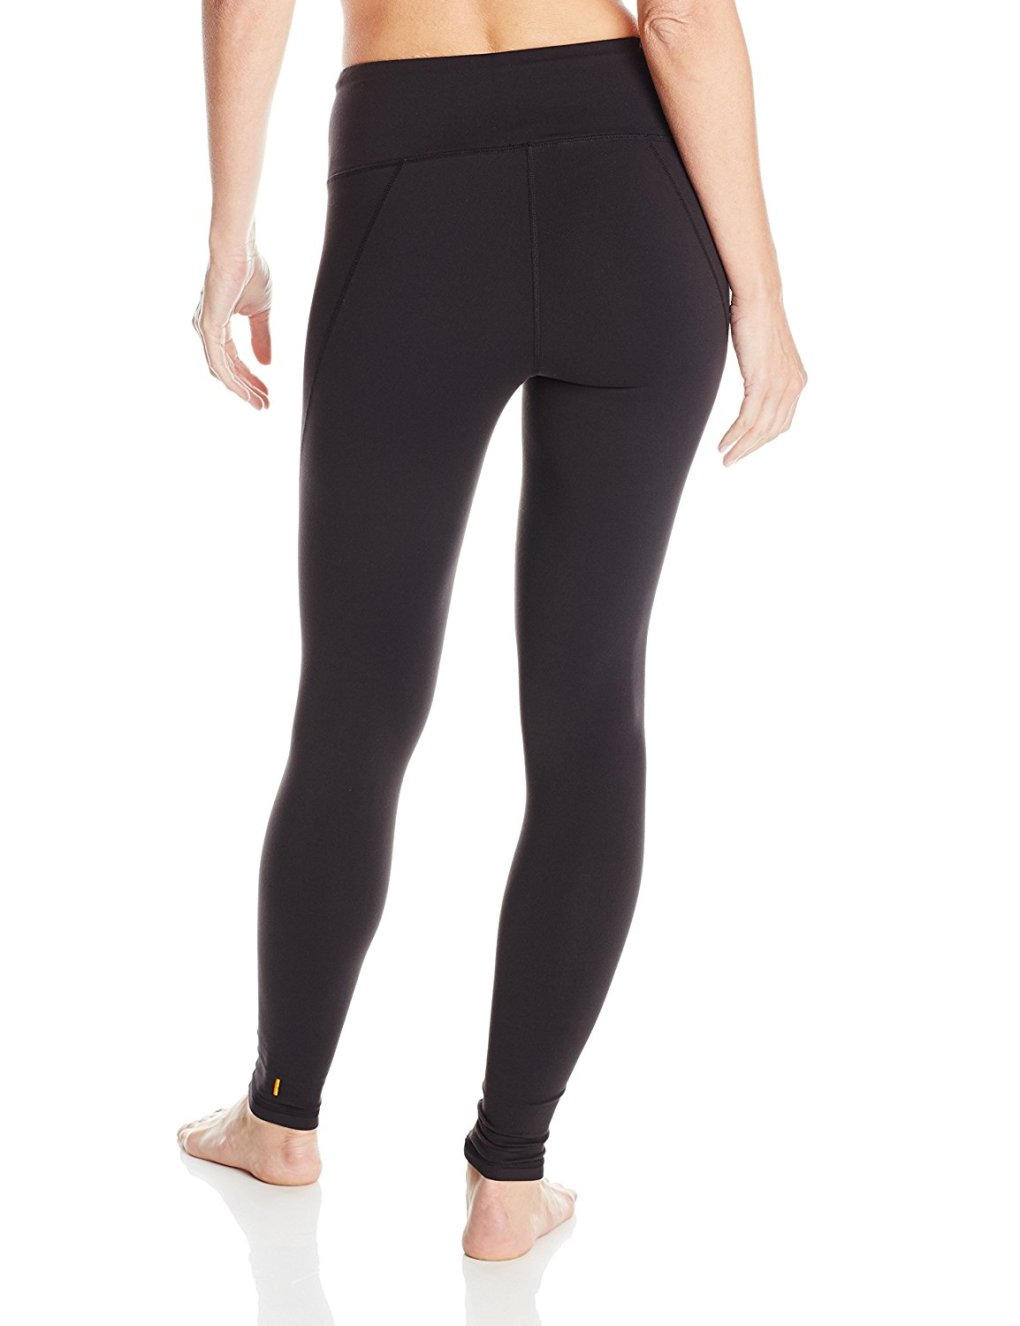 Lucy Women's Perfect Core Solid Legging